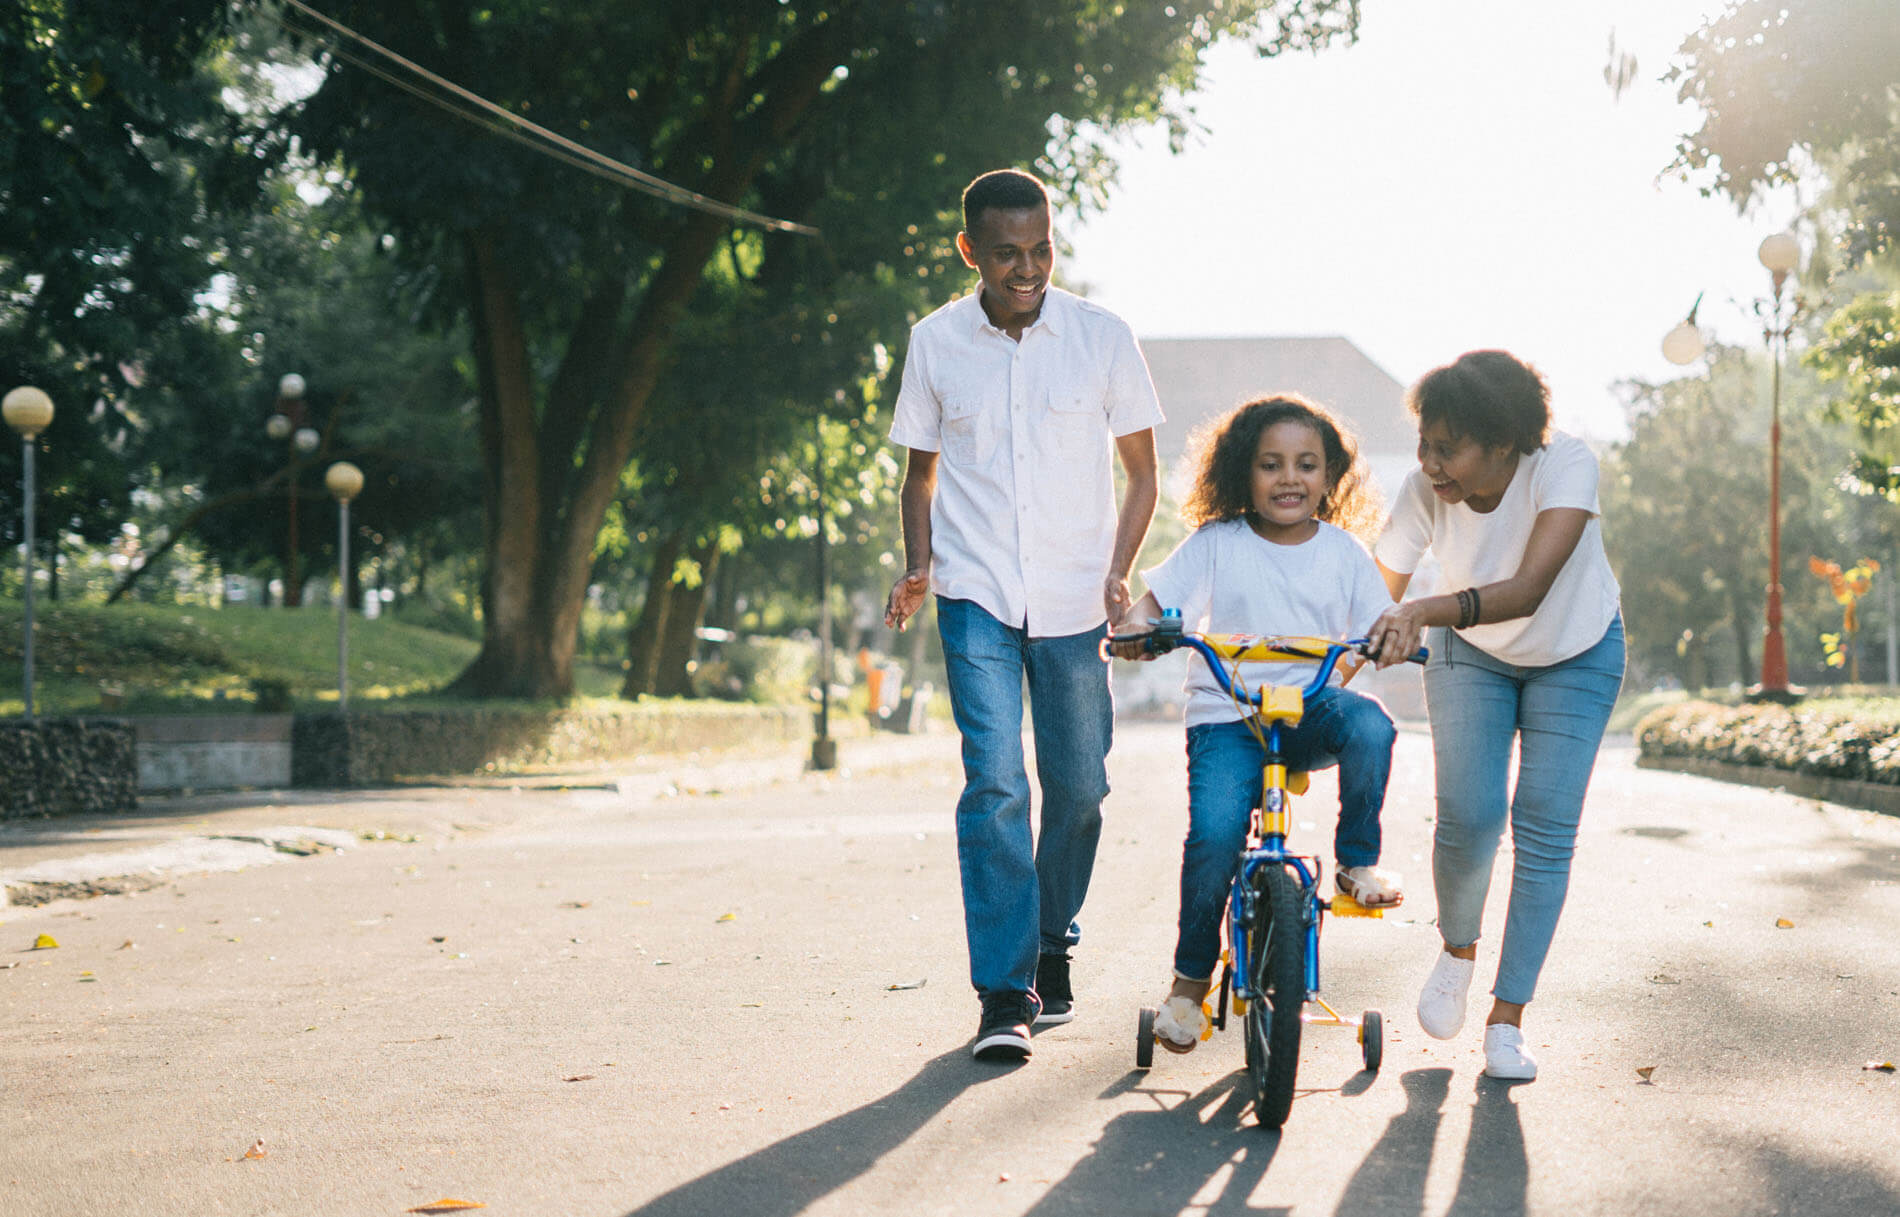 An image of a family with young daughter learning to ride a bike.